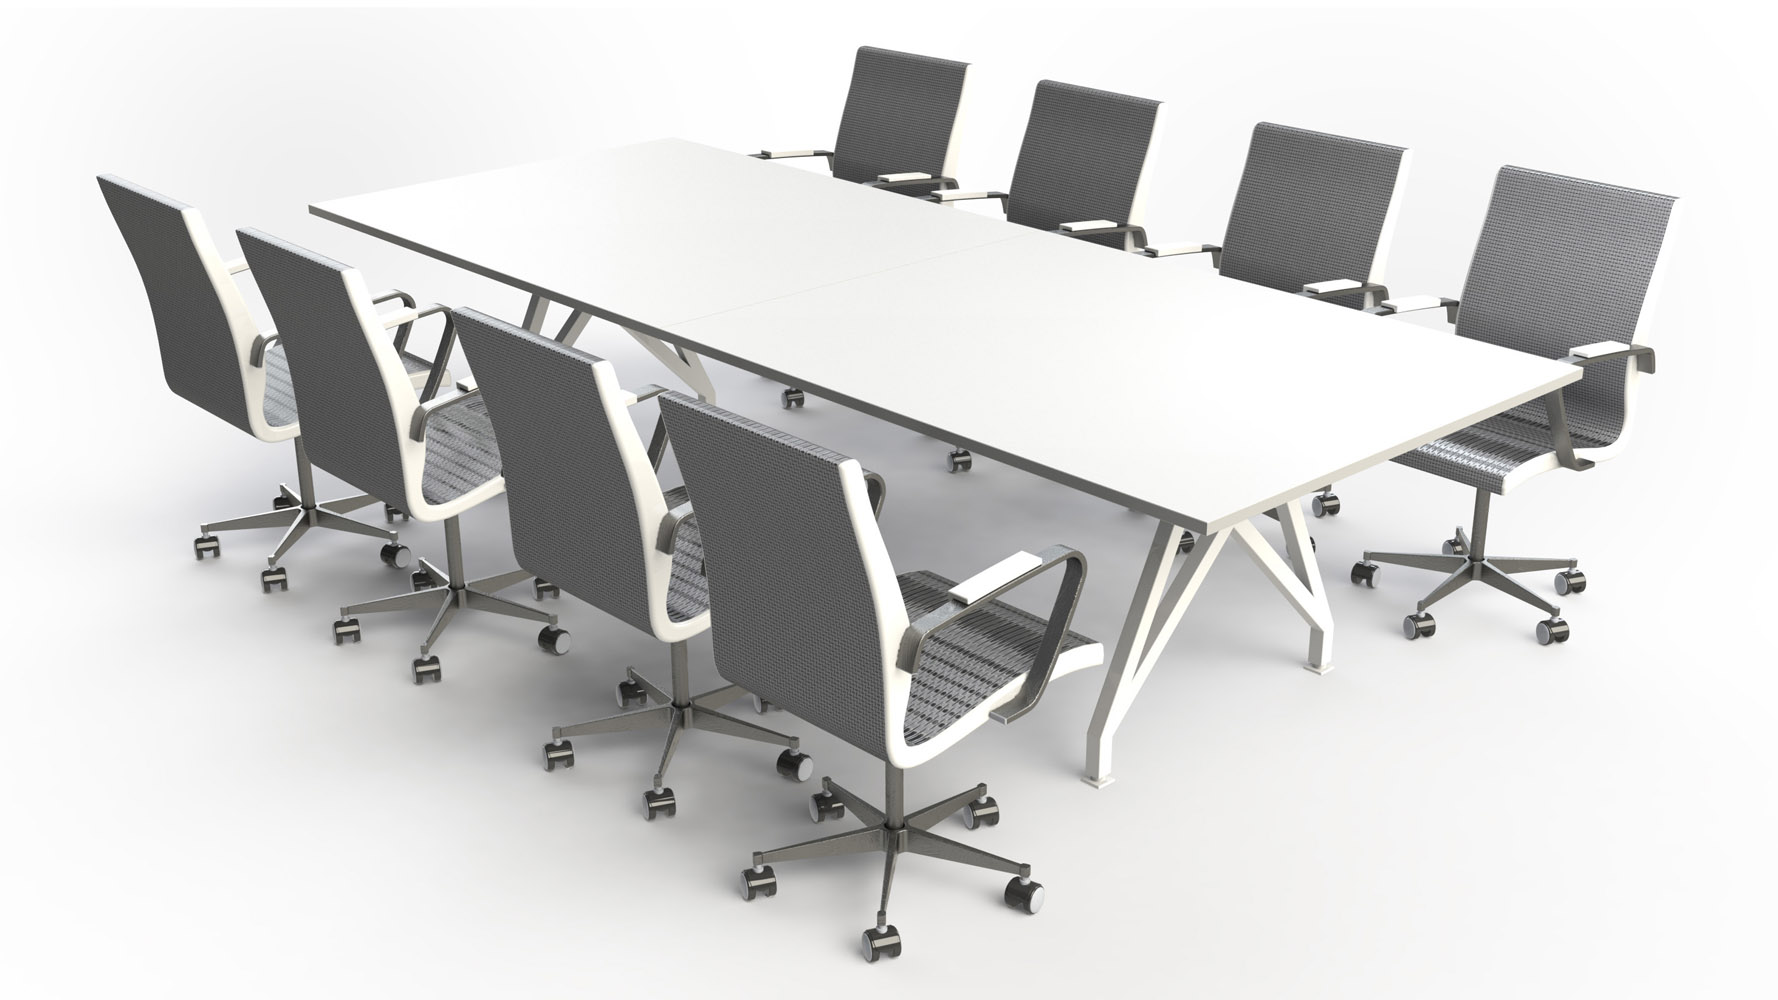 Think tank conference table 10ft zuri furniture for 10 ft conference room table